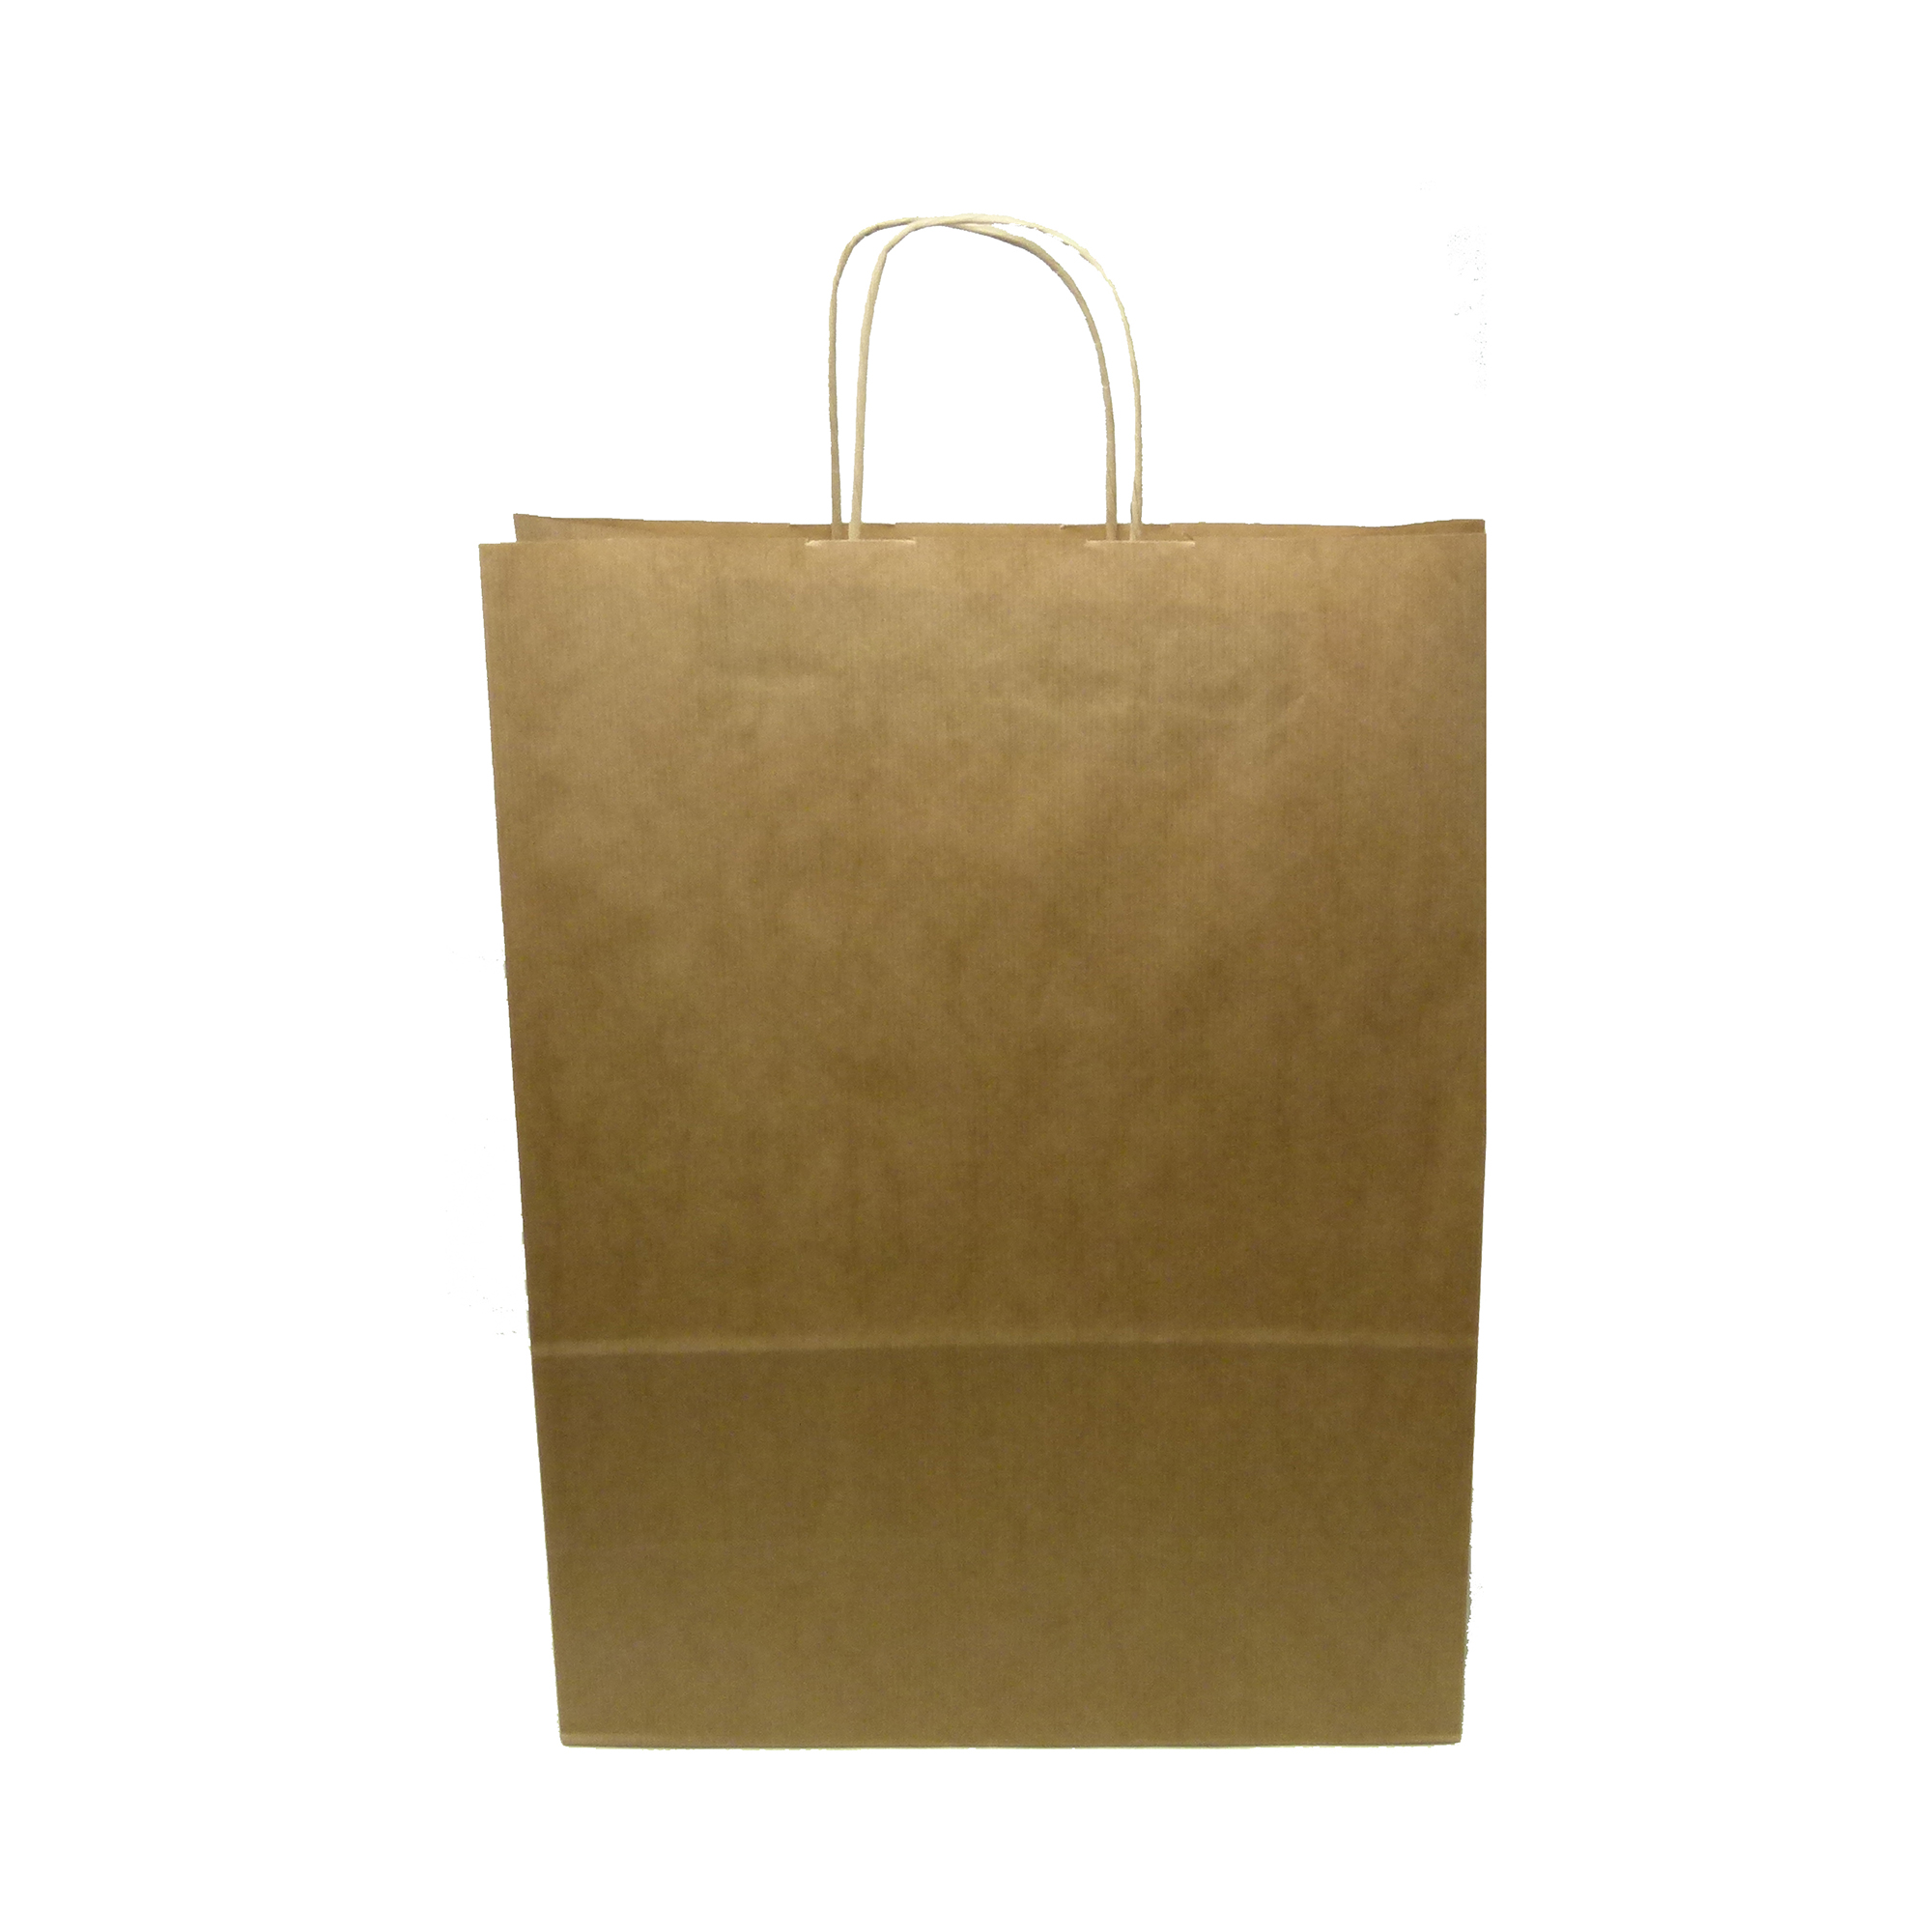 Canvas bags Kraft Paper Carrier Bag Twisted Handles Large 320x420x150mm 100g Natural Brown Ref 12933 [Pack 100]